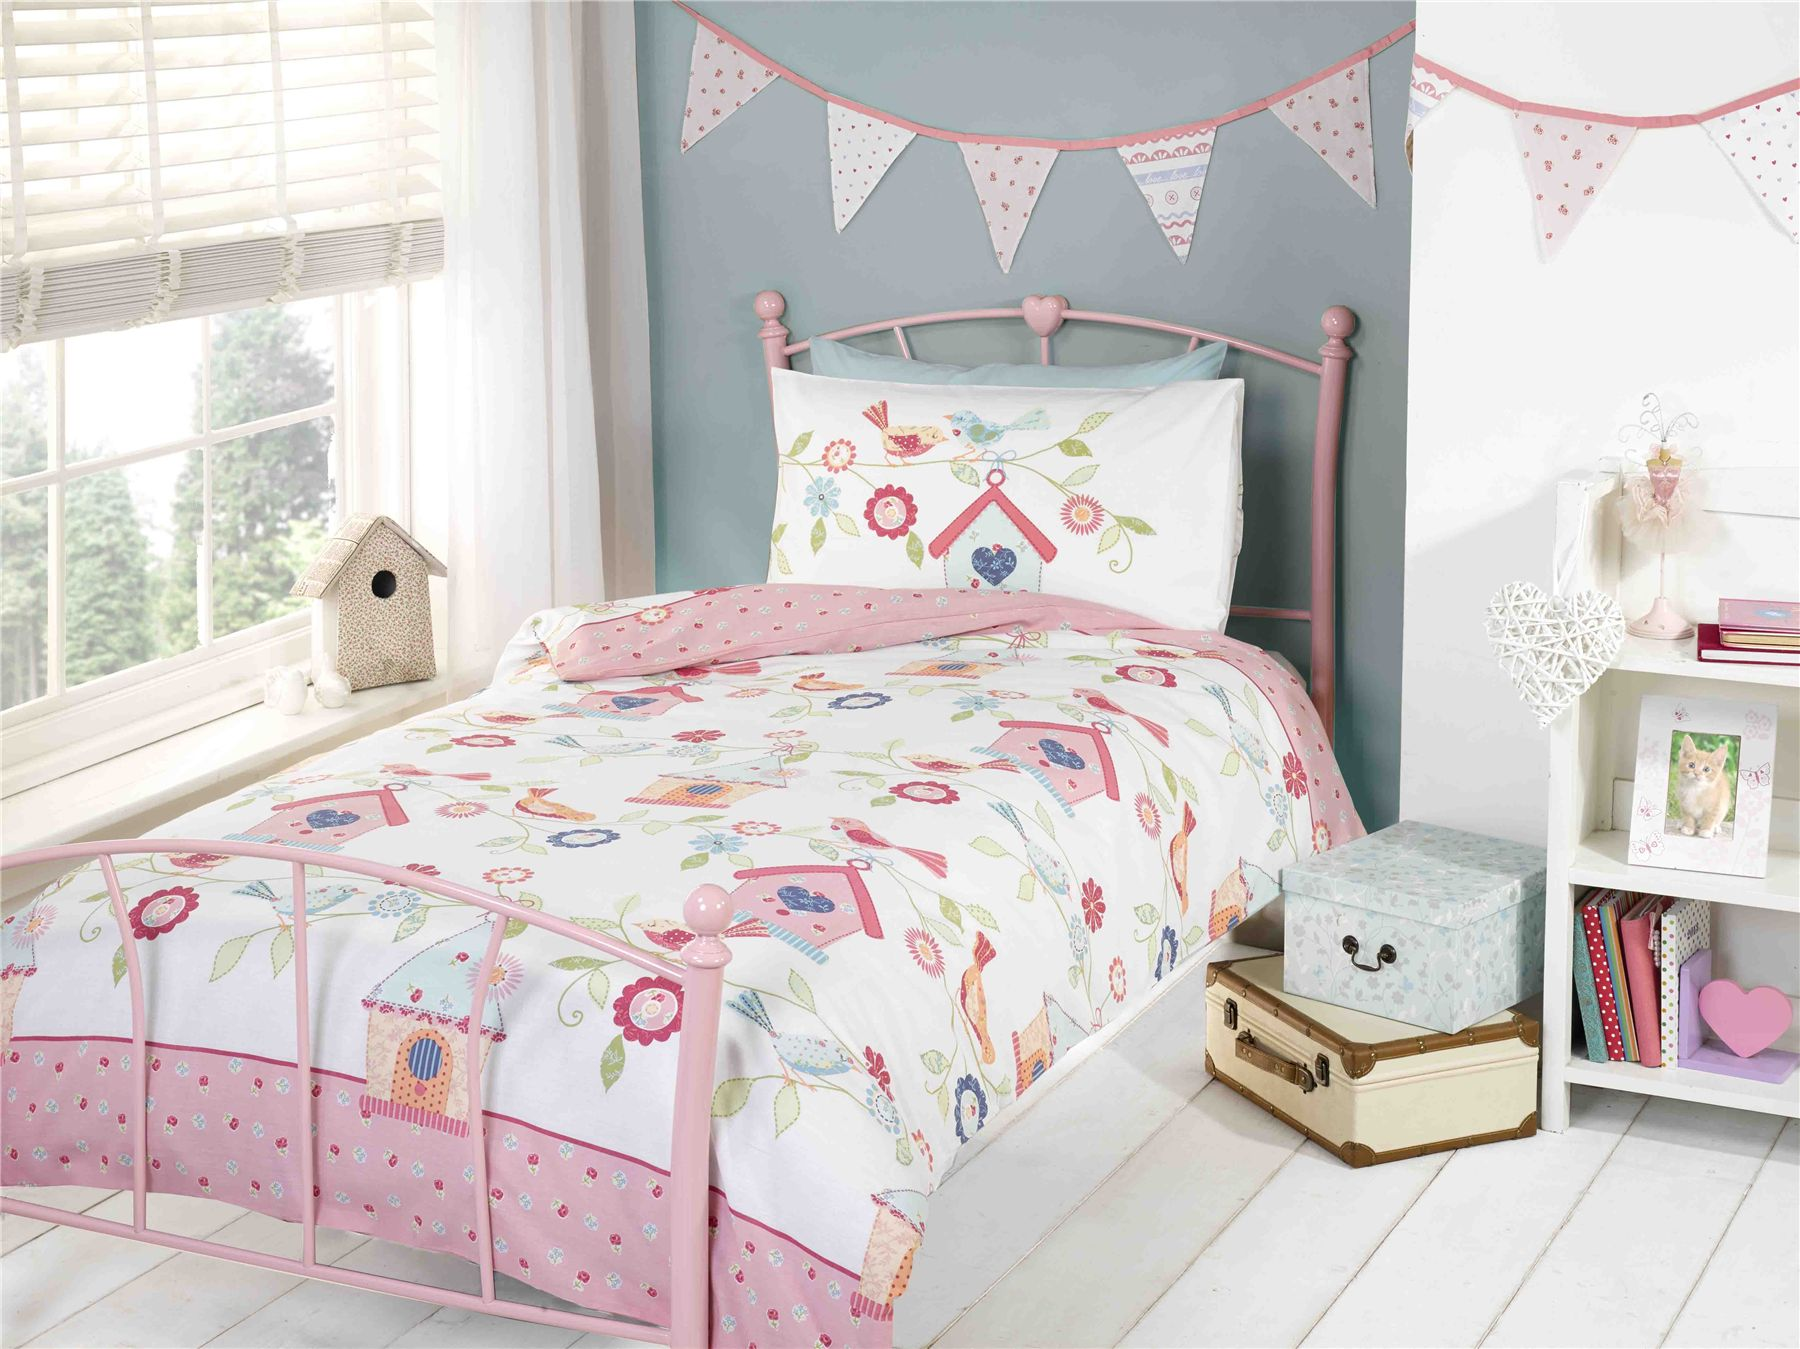 Cot Duvet And Pillow Set